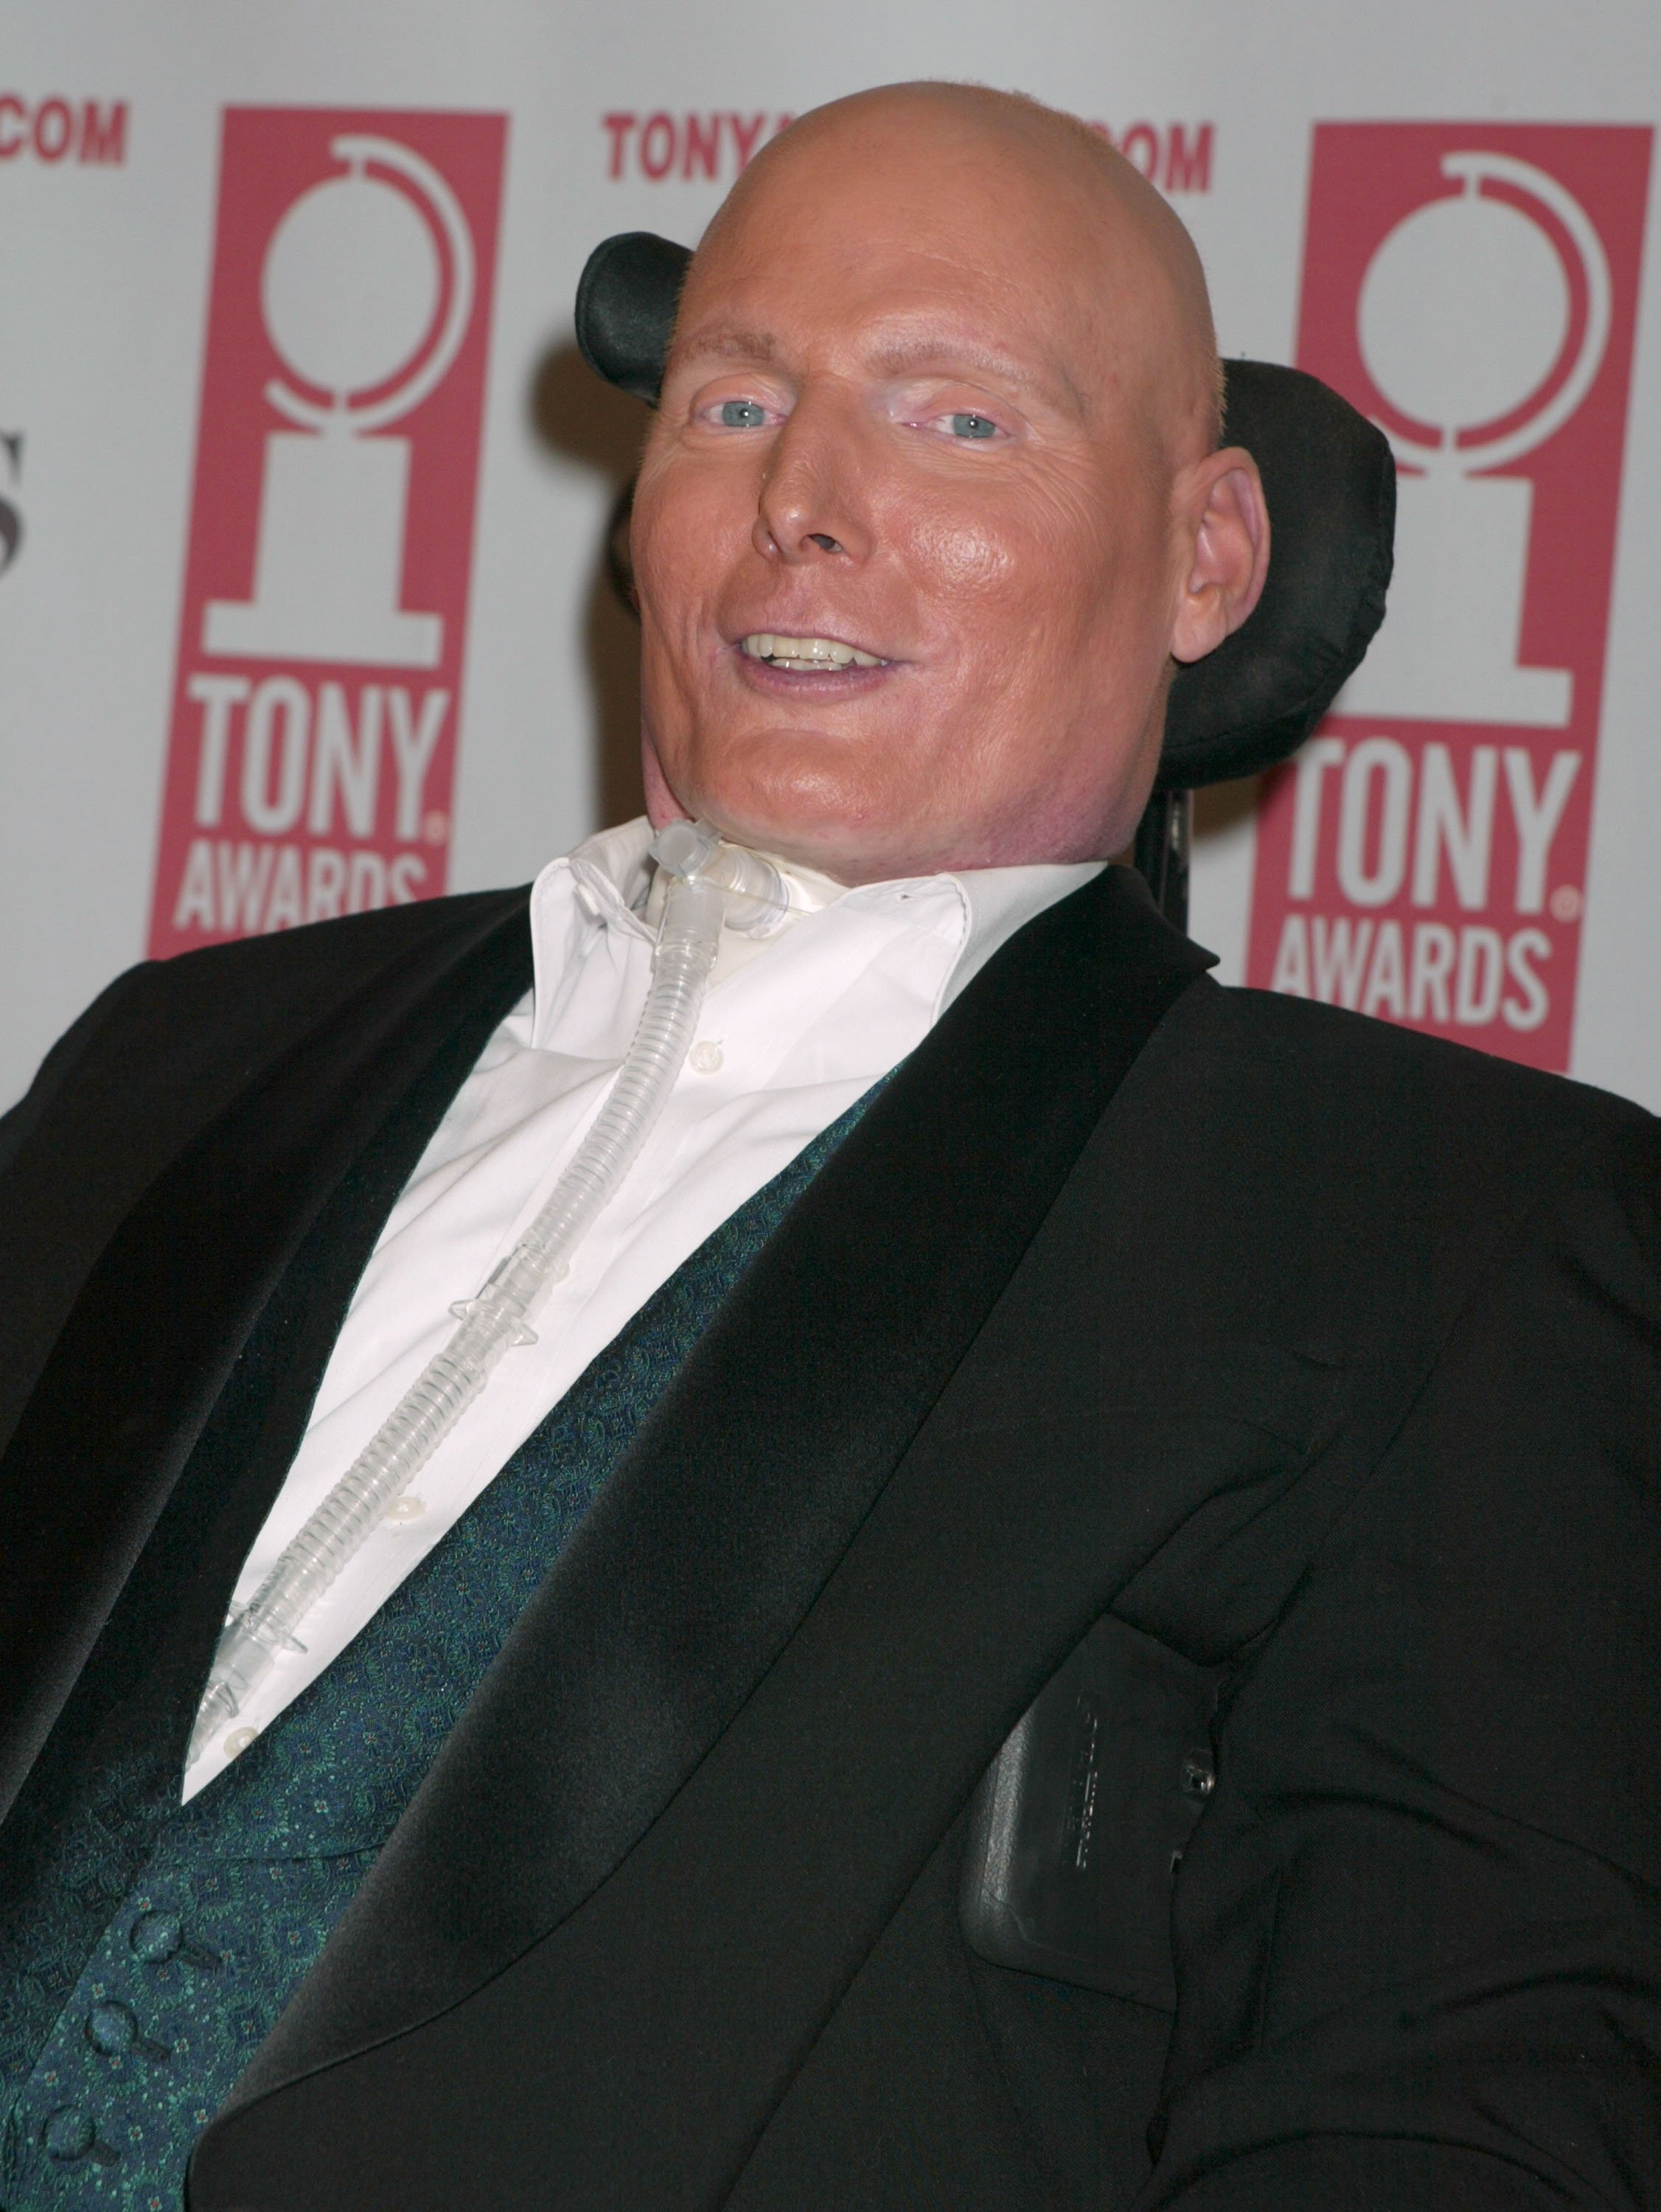 Chris Reeve at the 2003 TONY Awards  | Photo: Getty Images